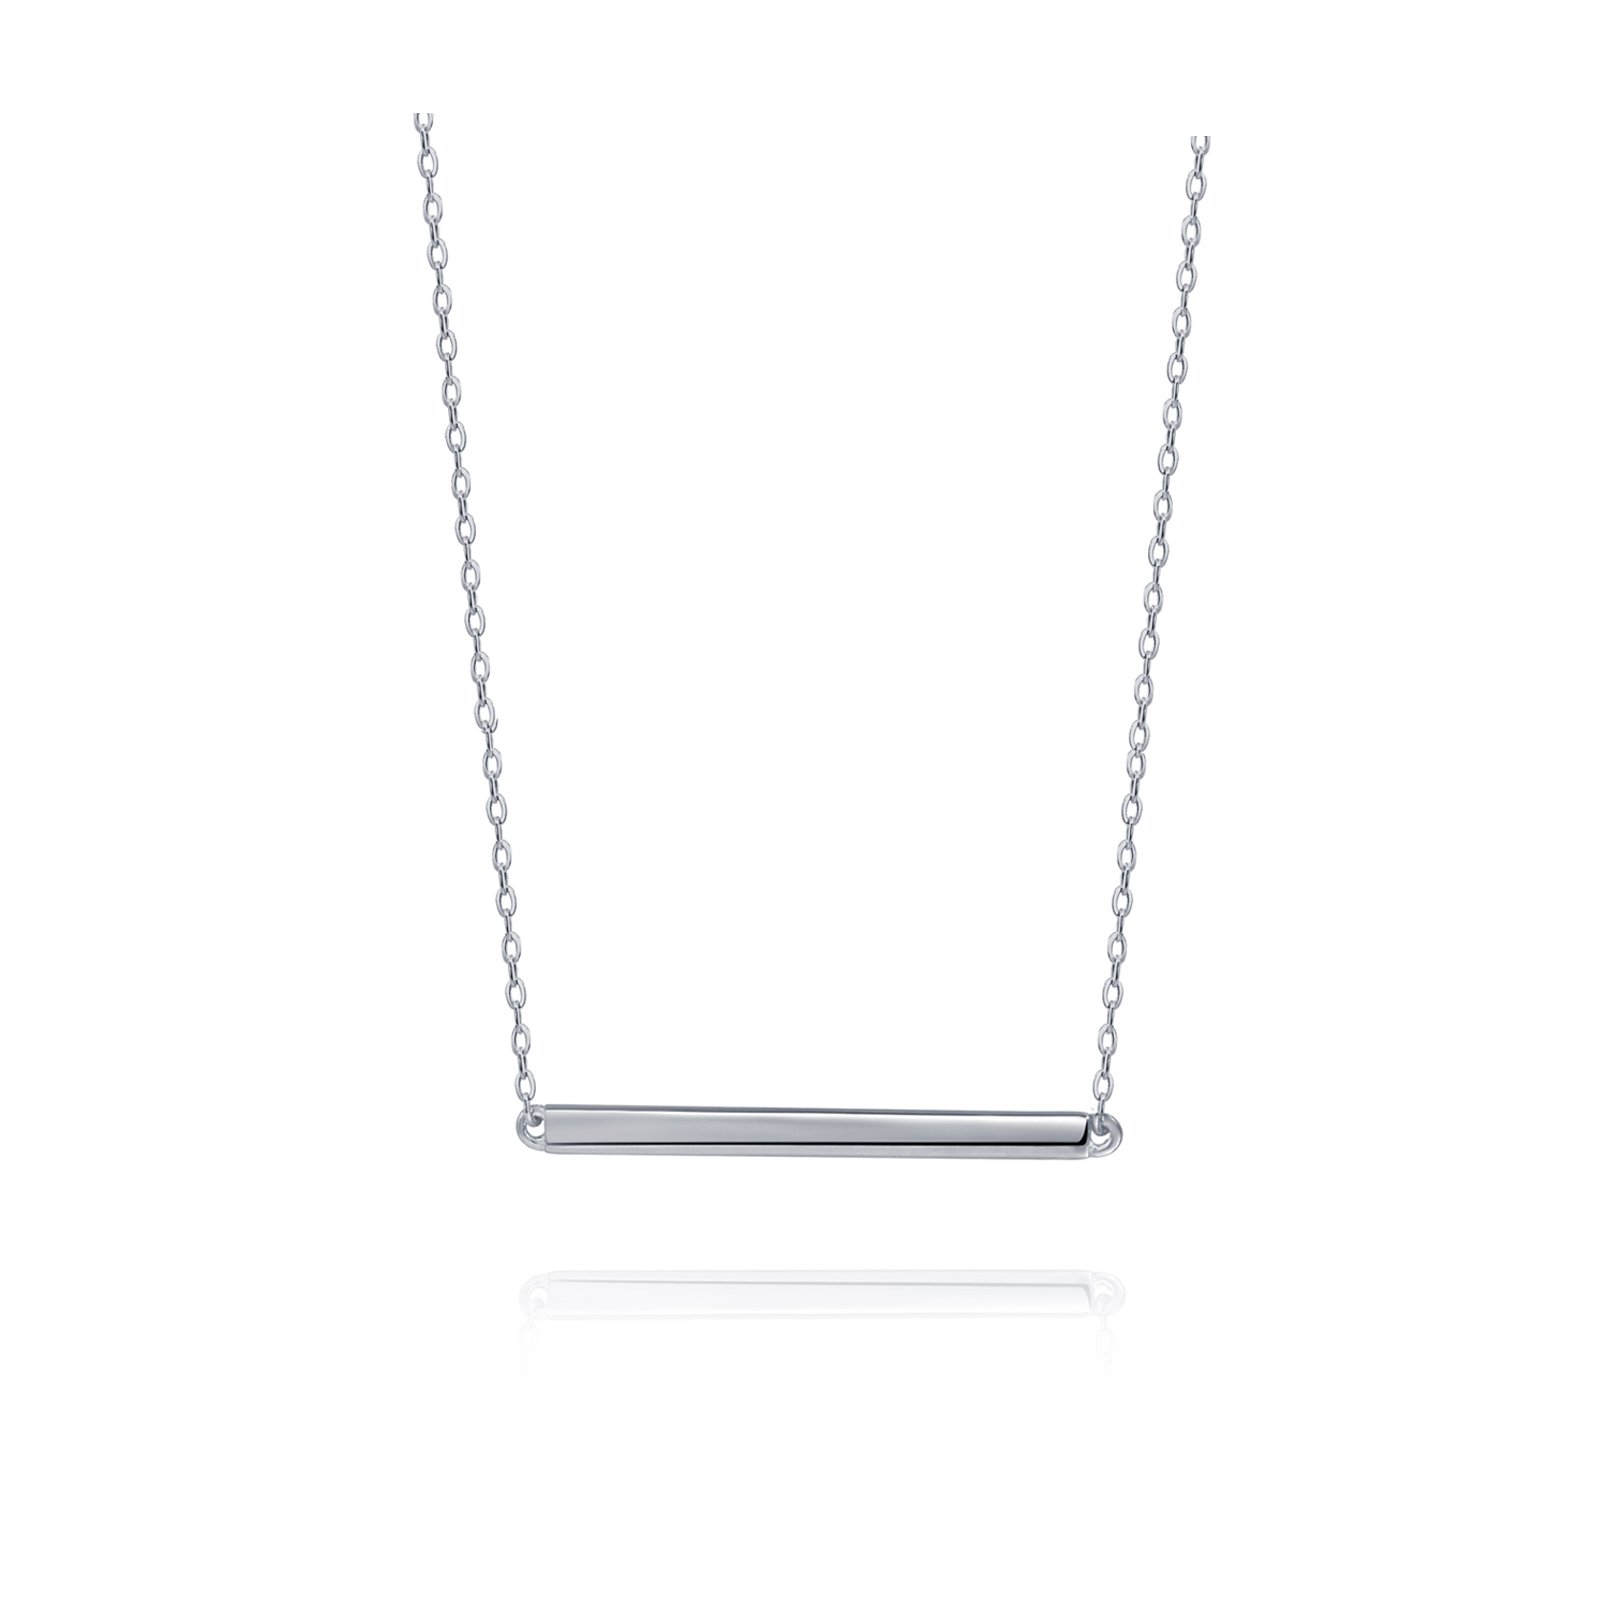 S.Leaf Bar Necklace Sterling Silver Minimalism Line Necklace Horizontal Bar Necklace (Necklace-White Gold) by S.Leaf (Image #1)